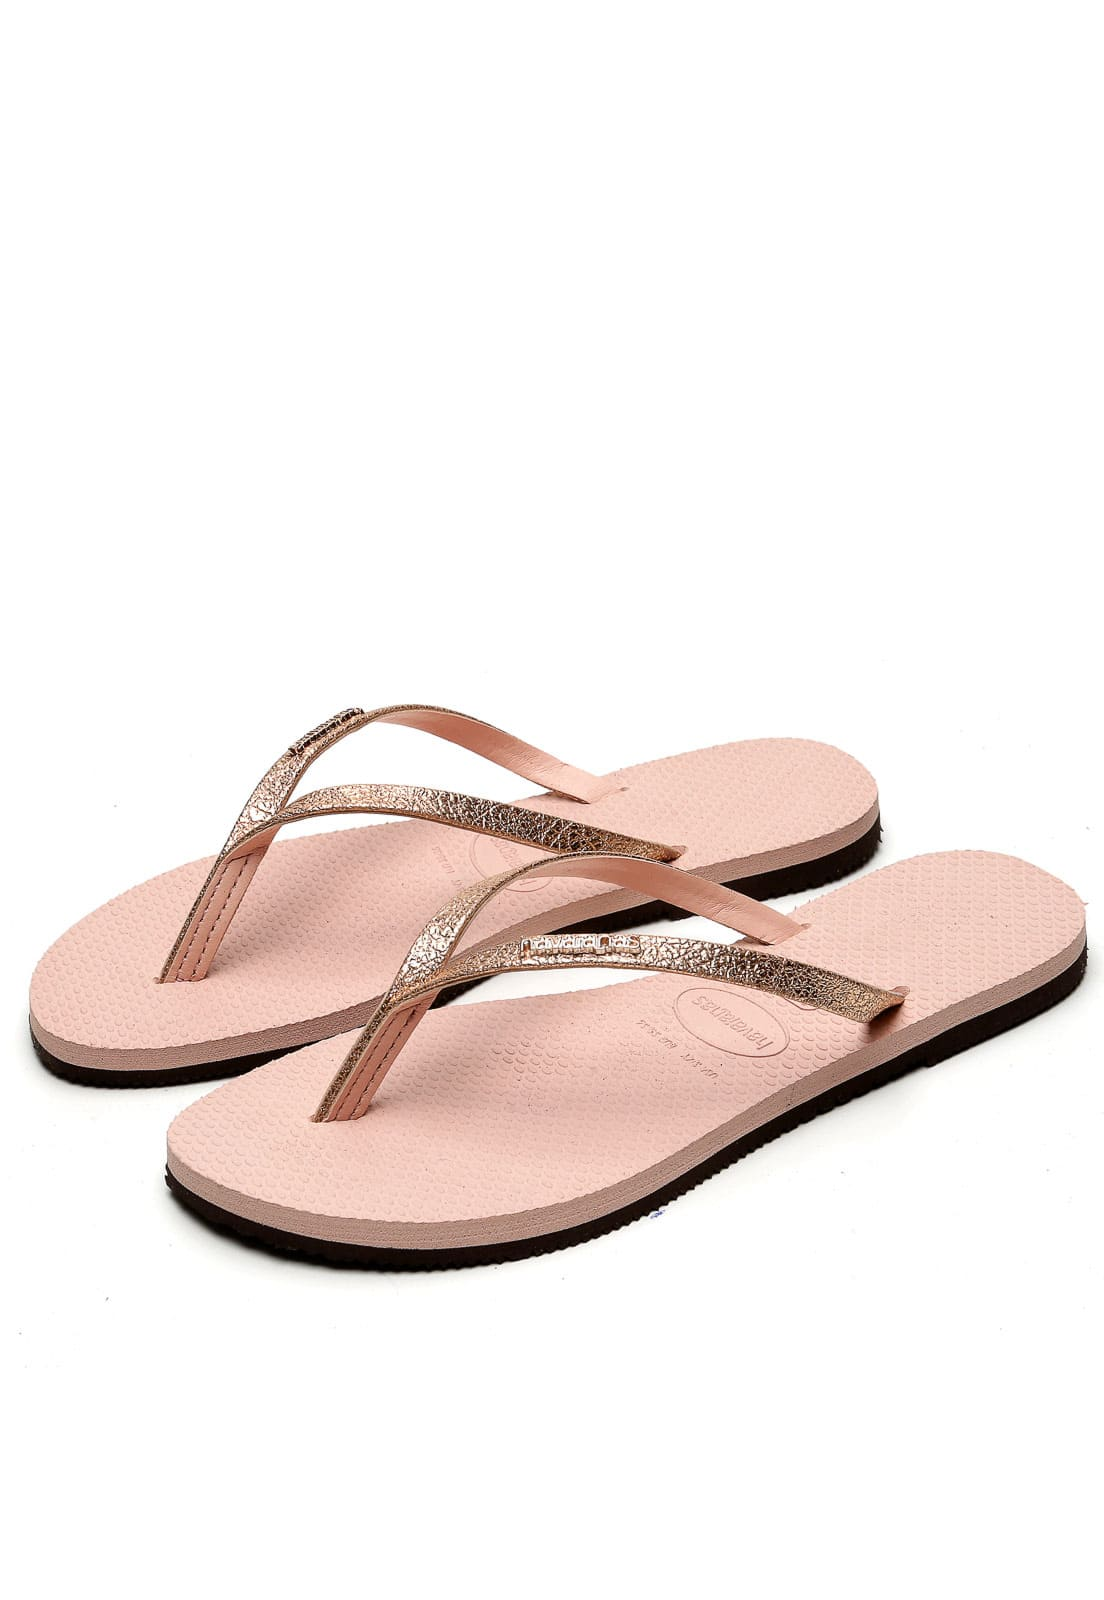 CHINELO HAVAIANAS FEMININO YOU SHINE - 4144391